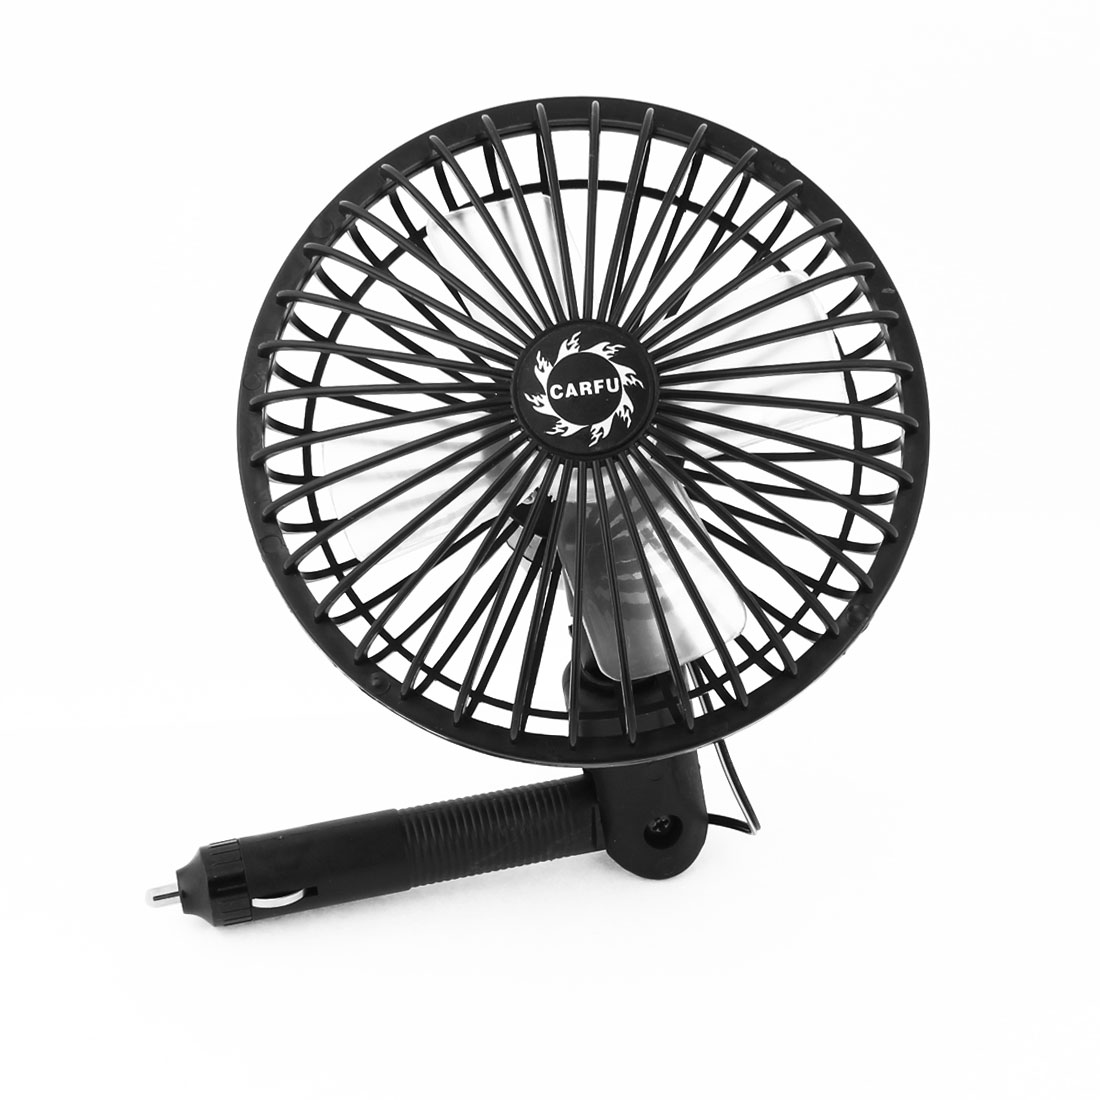 DC 12V Black Powered 2 Speed Sunmmer Protable Cooling Air Fan for Car